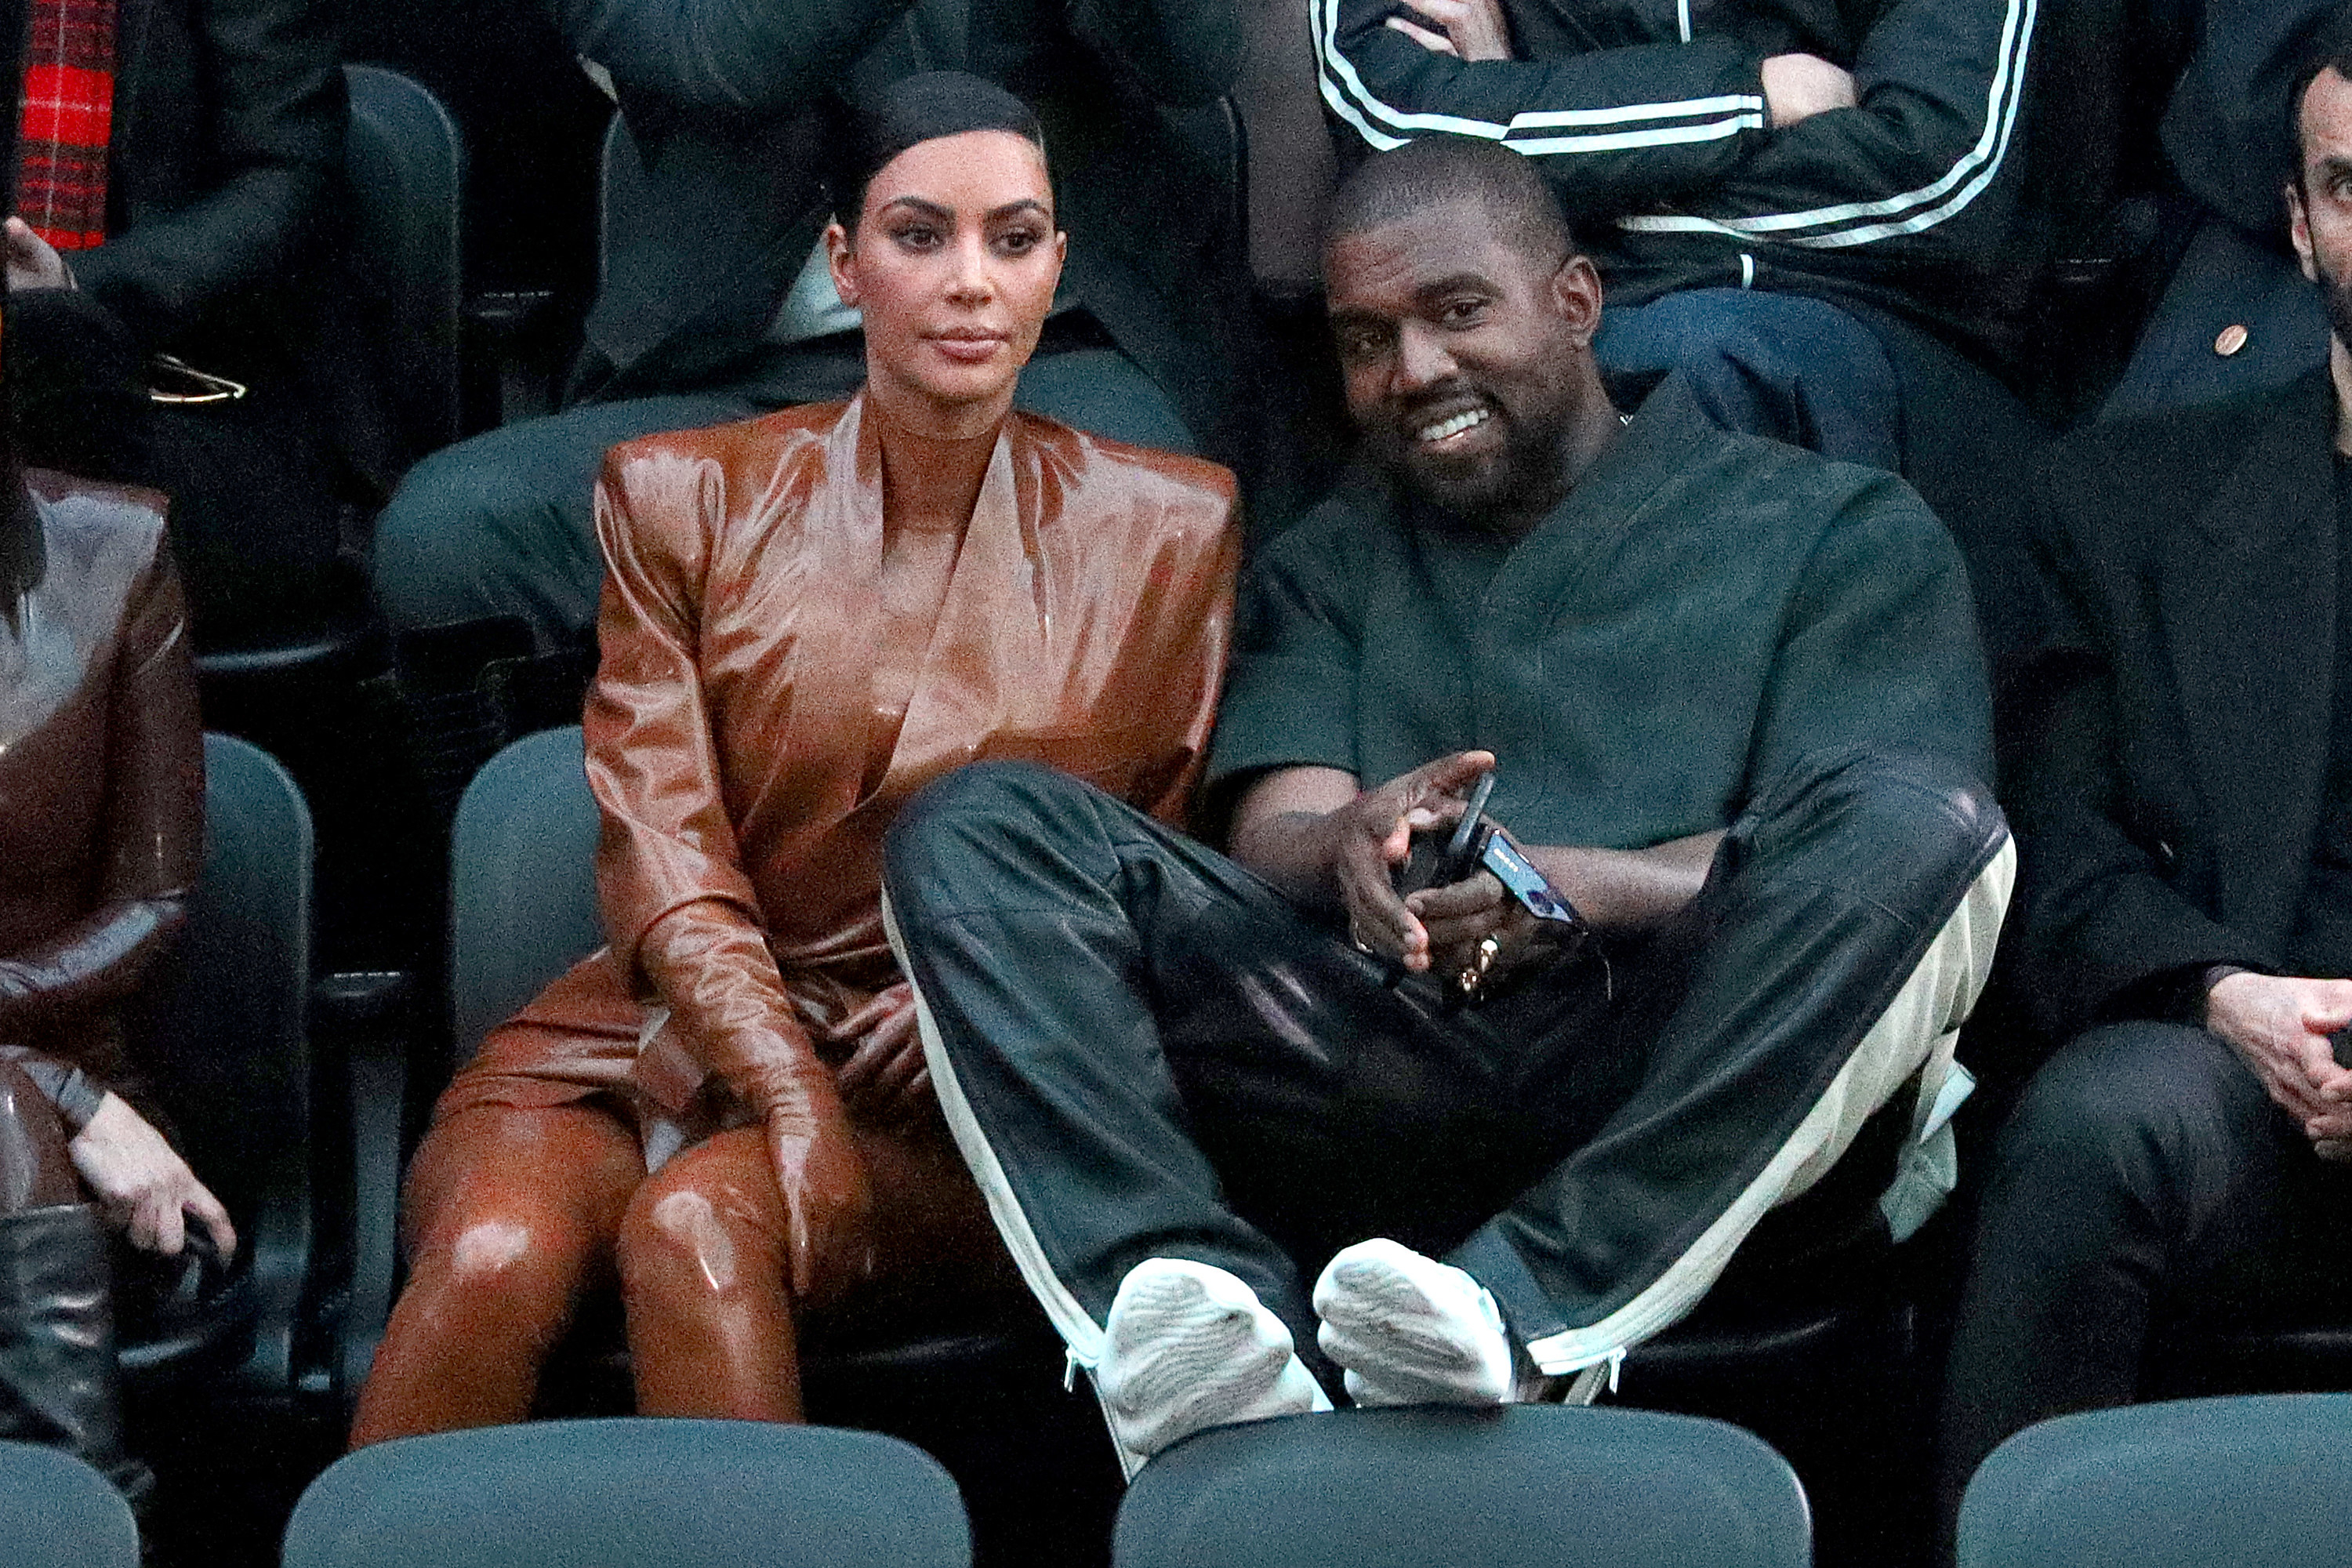 Kim Kardashian and Kanye West attend the Balenciaga show as part of the Paris Fashion Week Womenswear Fall/Winter 2020/2021 on March 01, 2020 in Paris, France